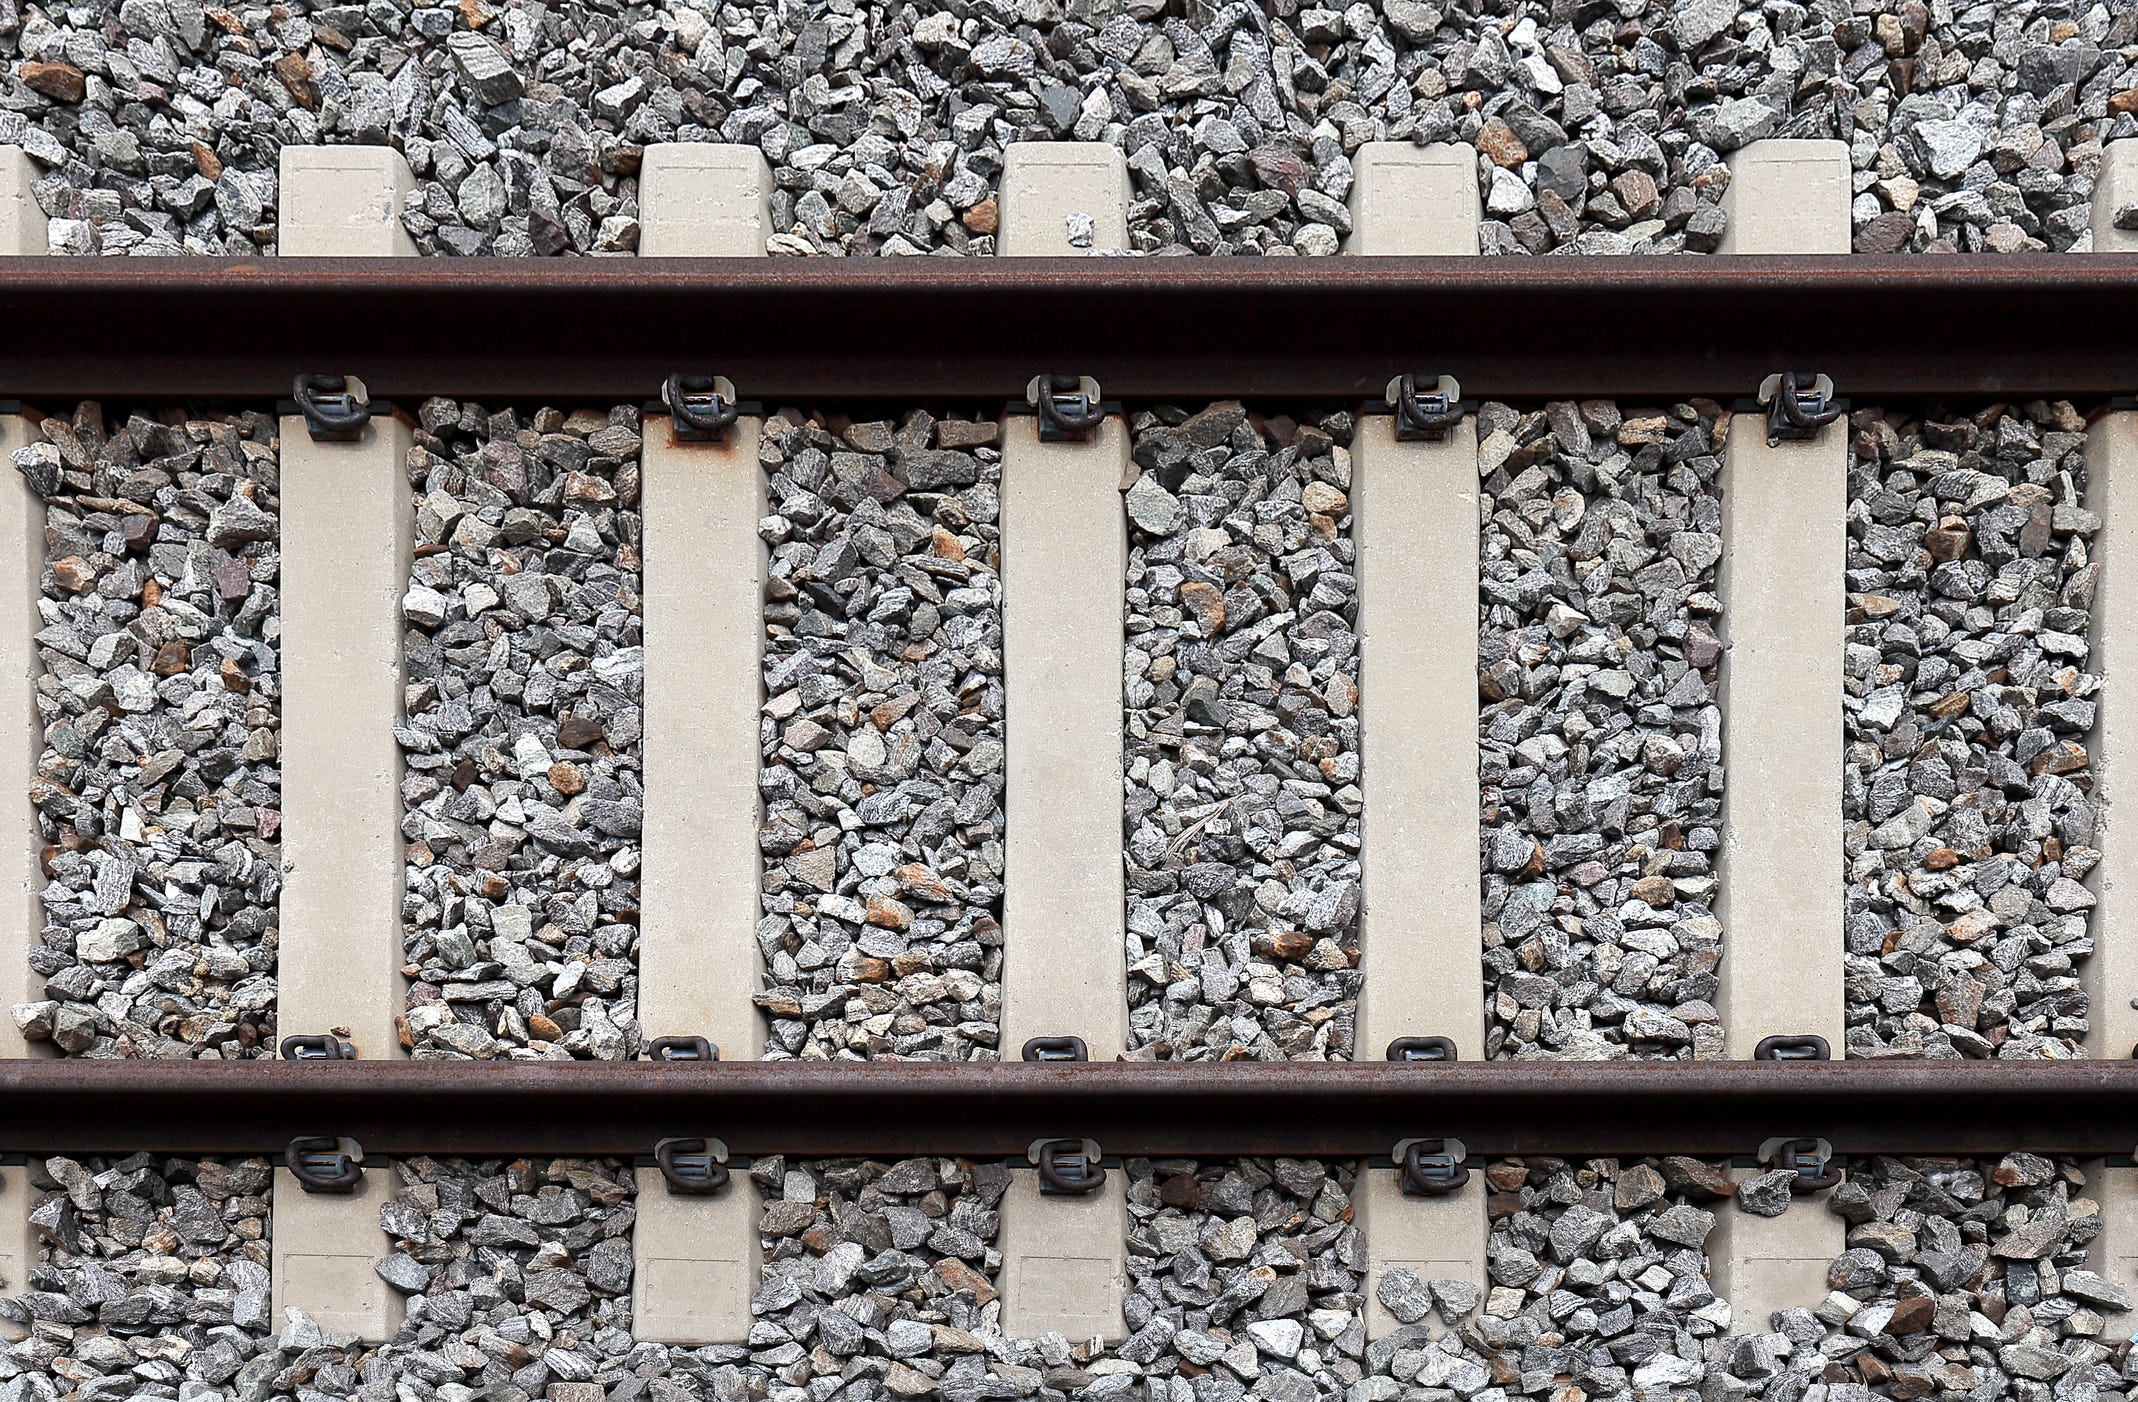 Railway operator to help restore once-troubled Mississippi rail line | Clarion Ledger